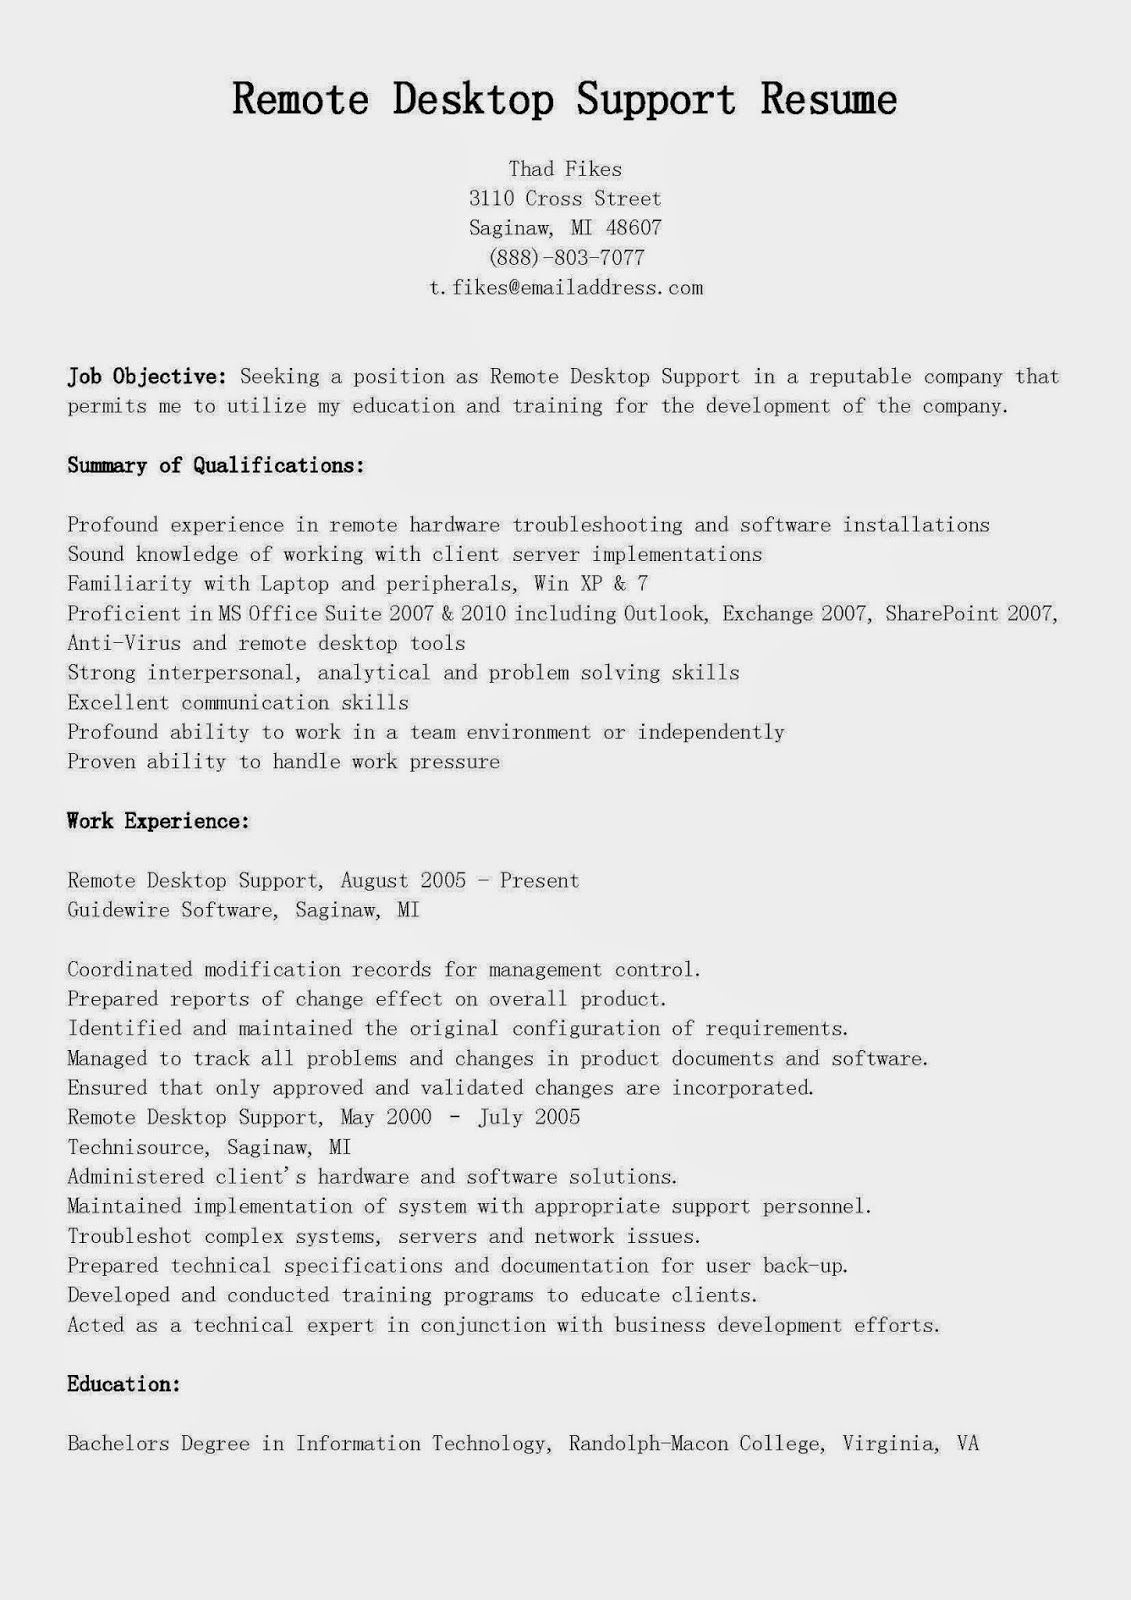 Remote Desktop Support Resume Sample HttpResumesamplesdownload